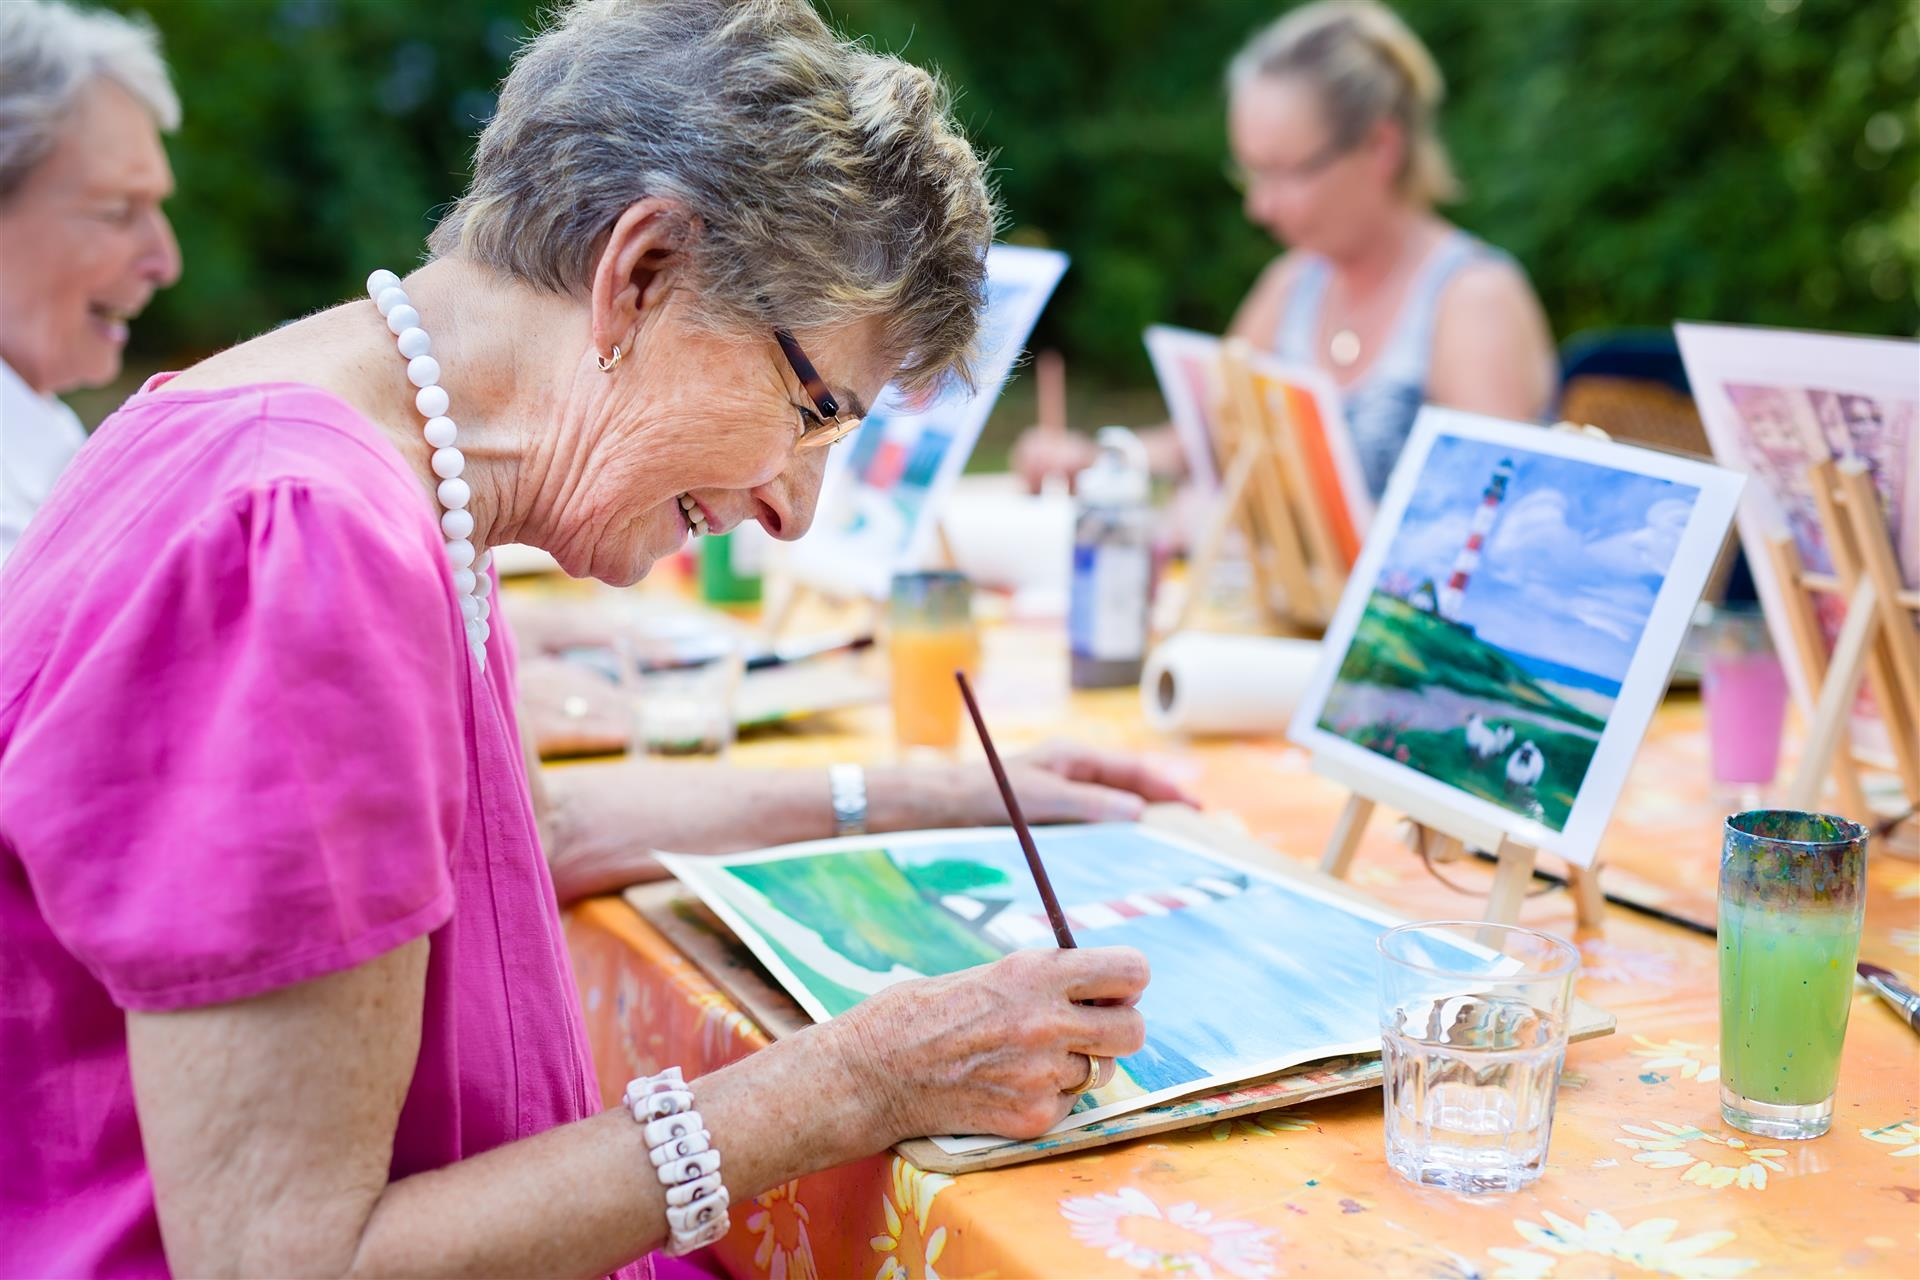 5 FUN INDOOR ASSISTED LIVING COMMUNITY ACTIVITIES FOR COLD DAYS